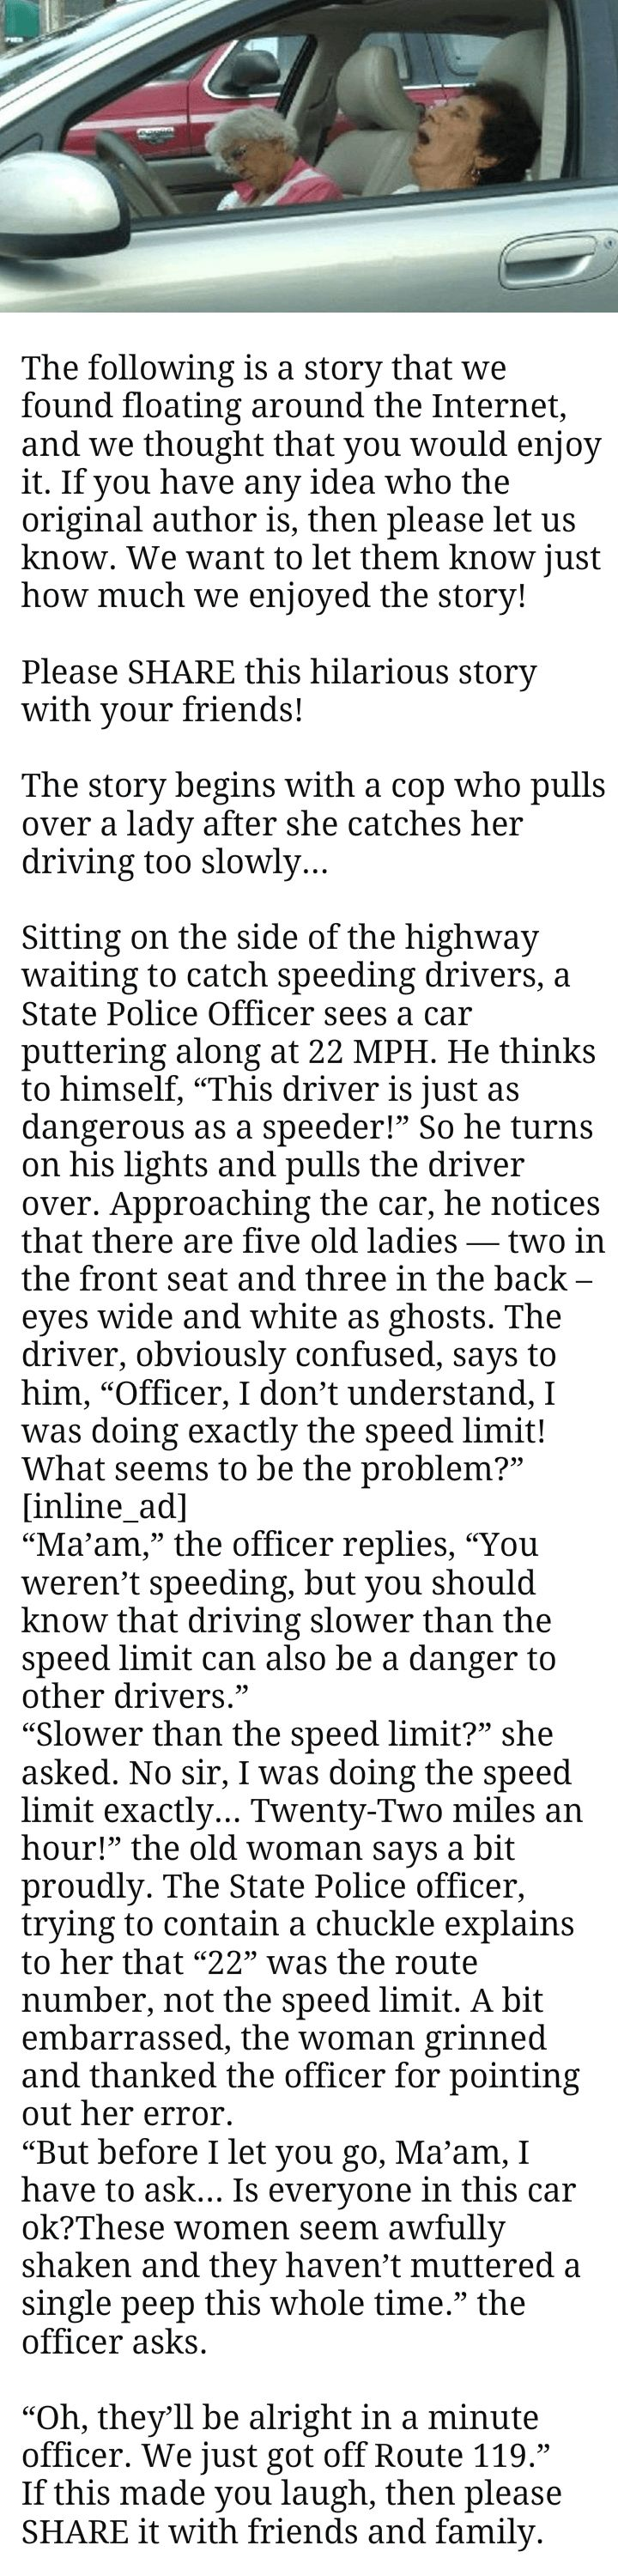 Once, 5 women stopped by State Police officer over not following the speed limit on the highway. But the cop didn't expect the driver to say this.